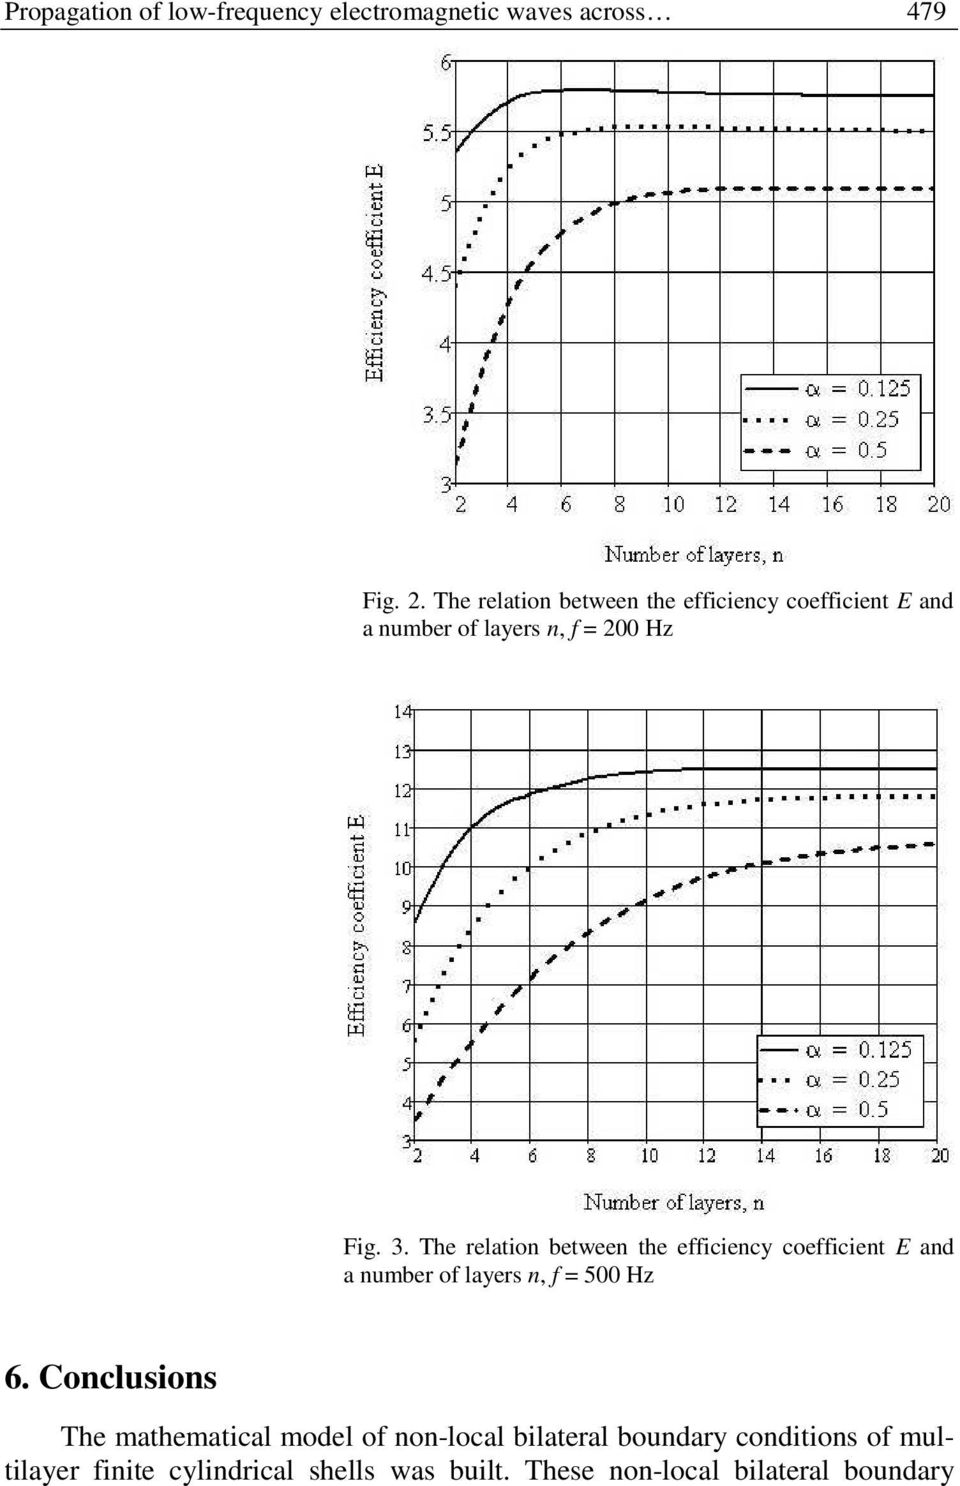 The relation between the efficiency coefficient E and a number of layers n, f = 500 Hz 6.